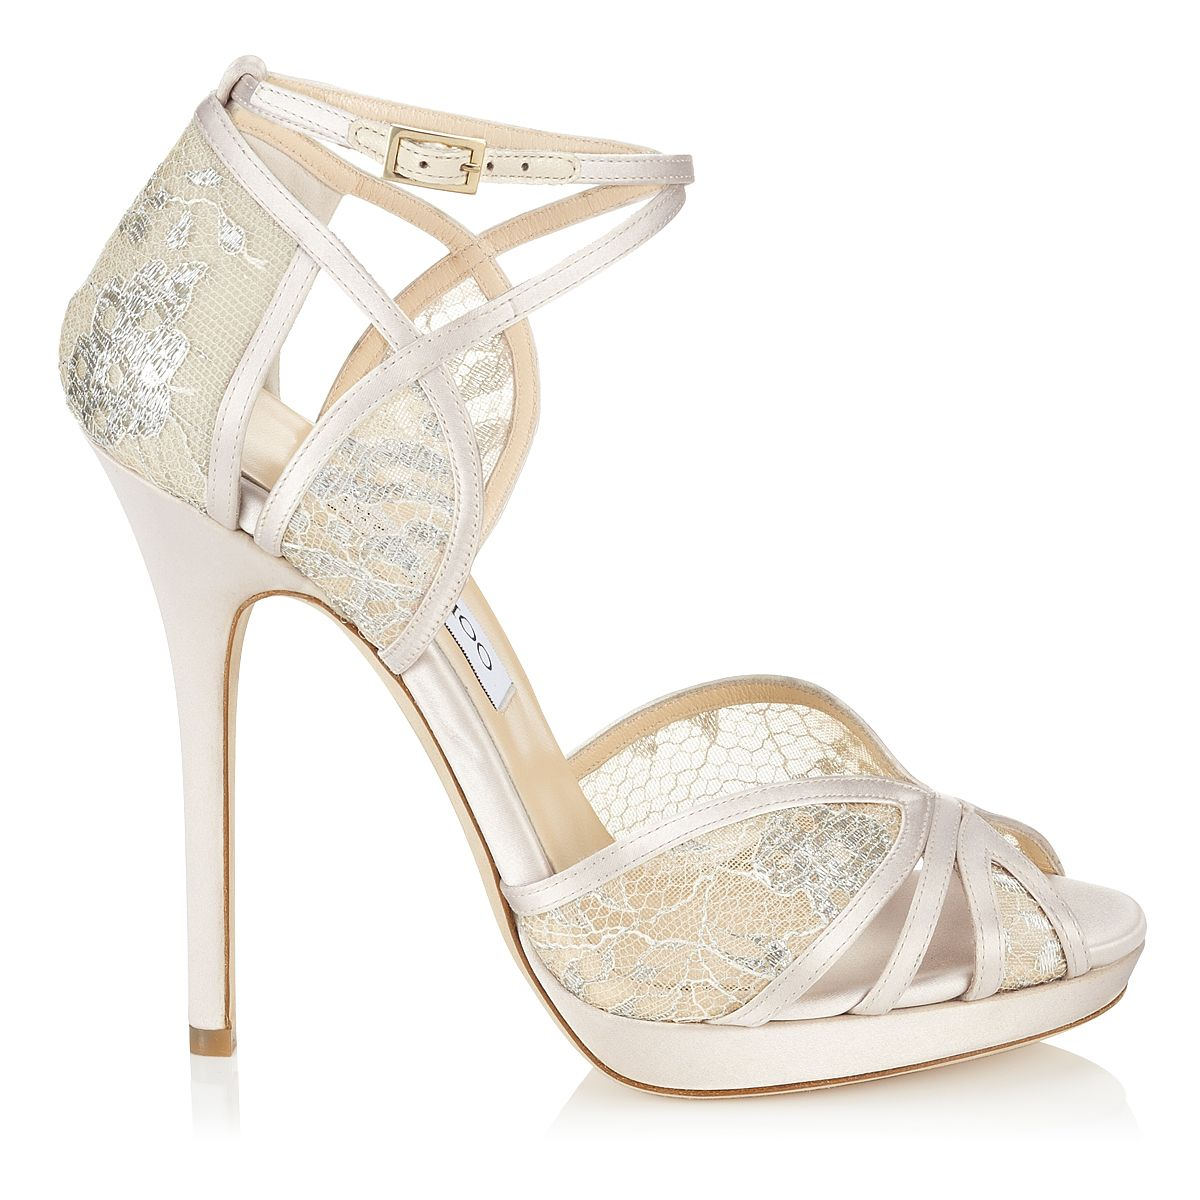 wedding sandals for bride Wedding shoes to die for by Jimmy Choo JimmyChoo weddingshoes shoes